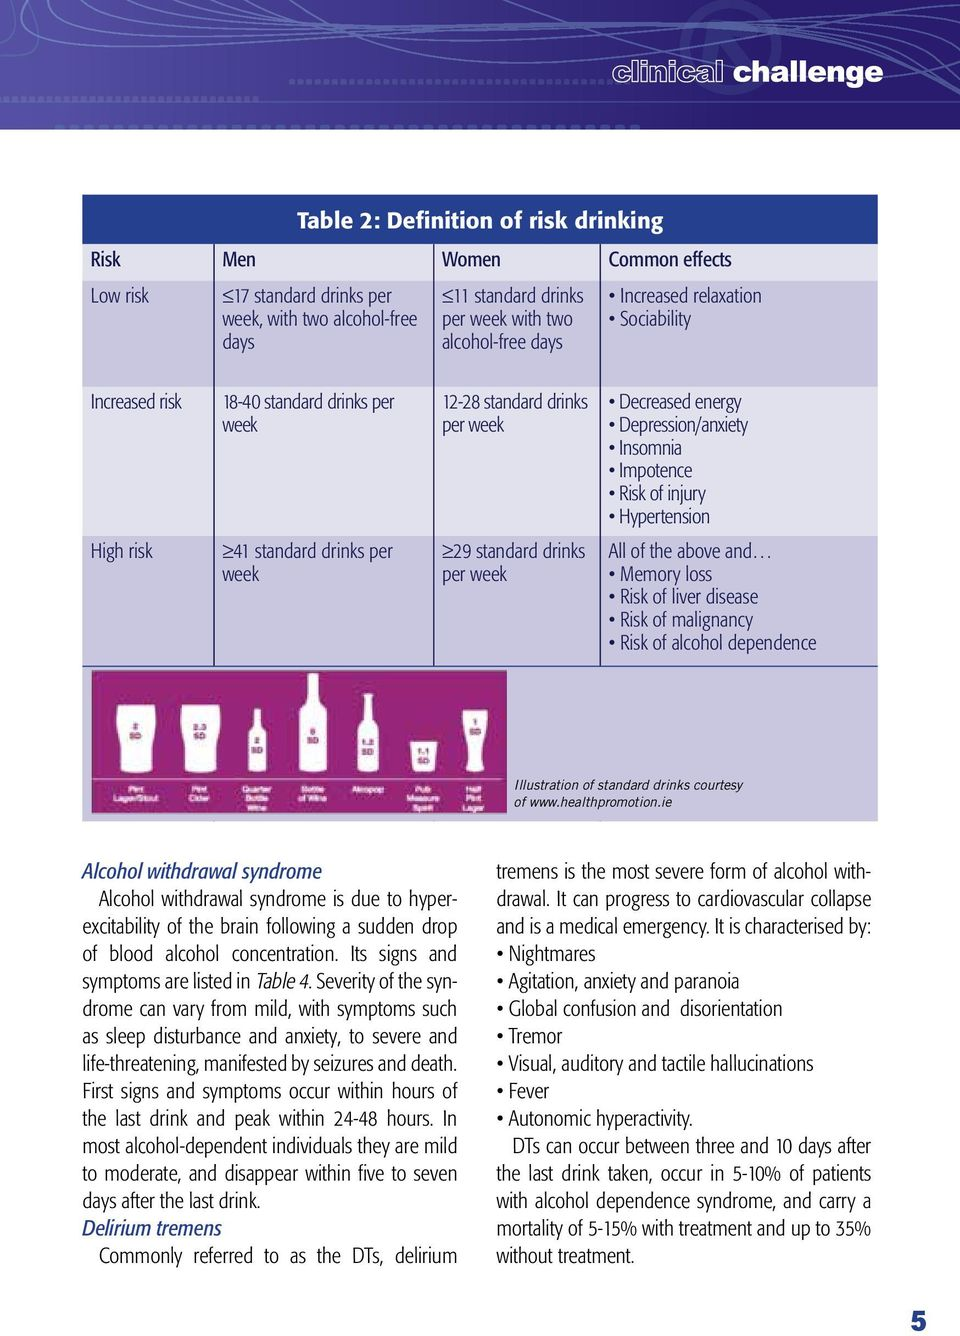 and Memory loss Risk of liver disease Risk of malignancy Risk of alcohol dependence High risk 41 standard drinks per week 29 standard drinks per week Illustration of standard drinks courtesy of www.